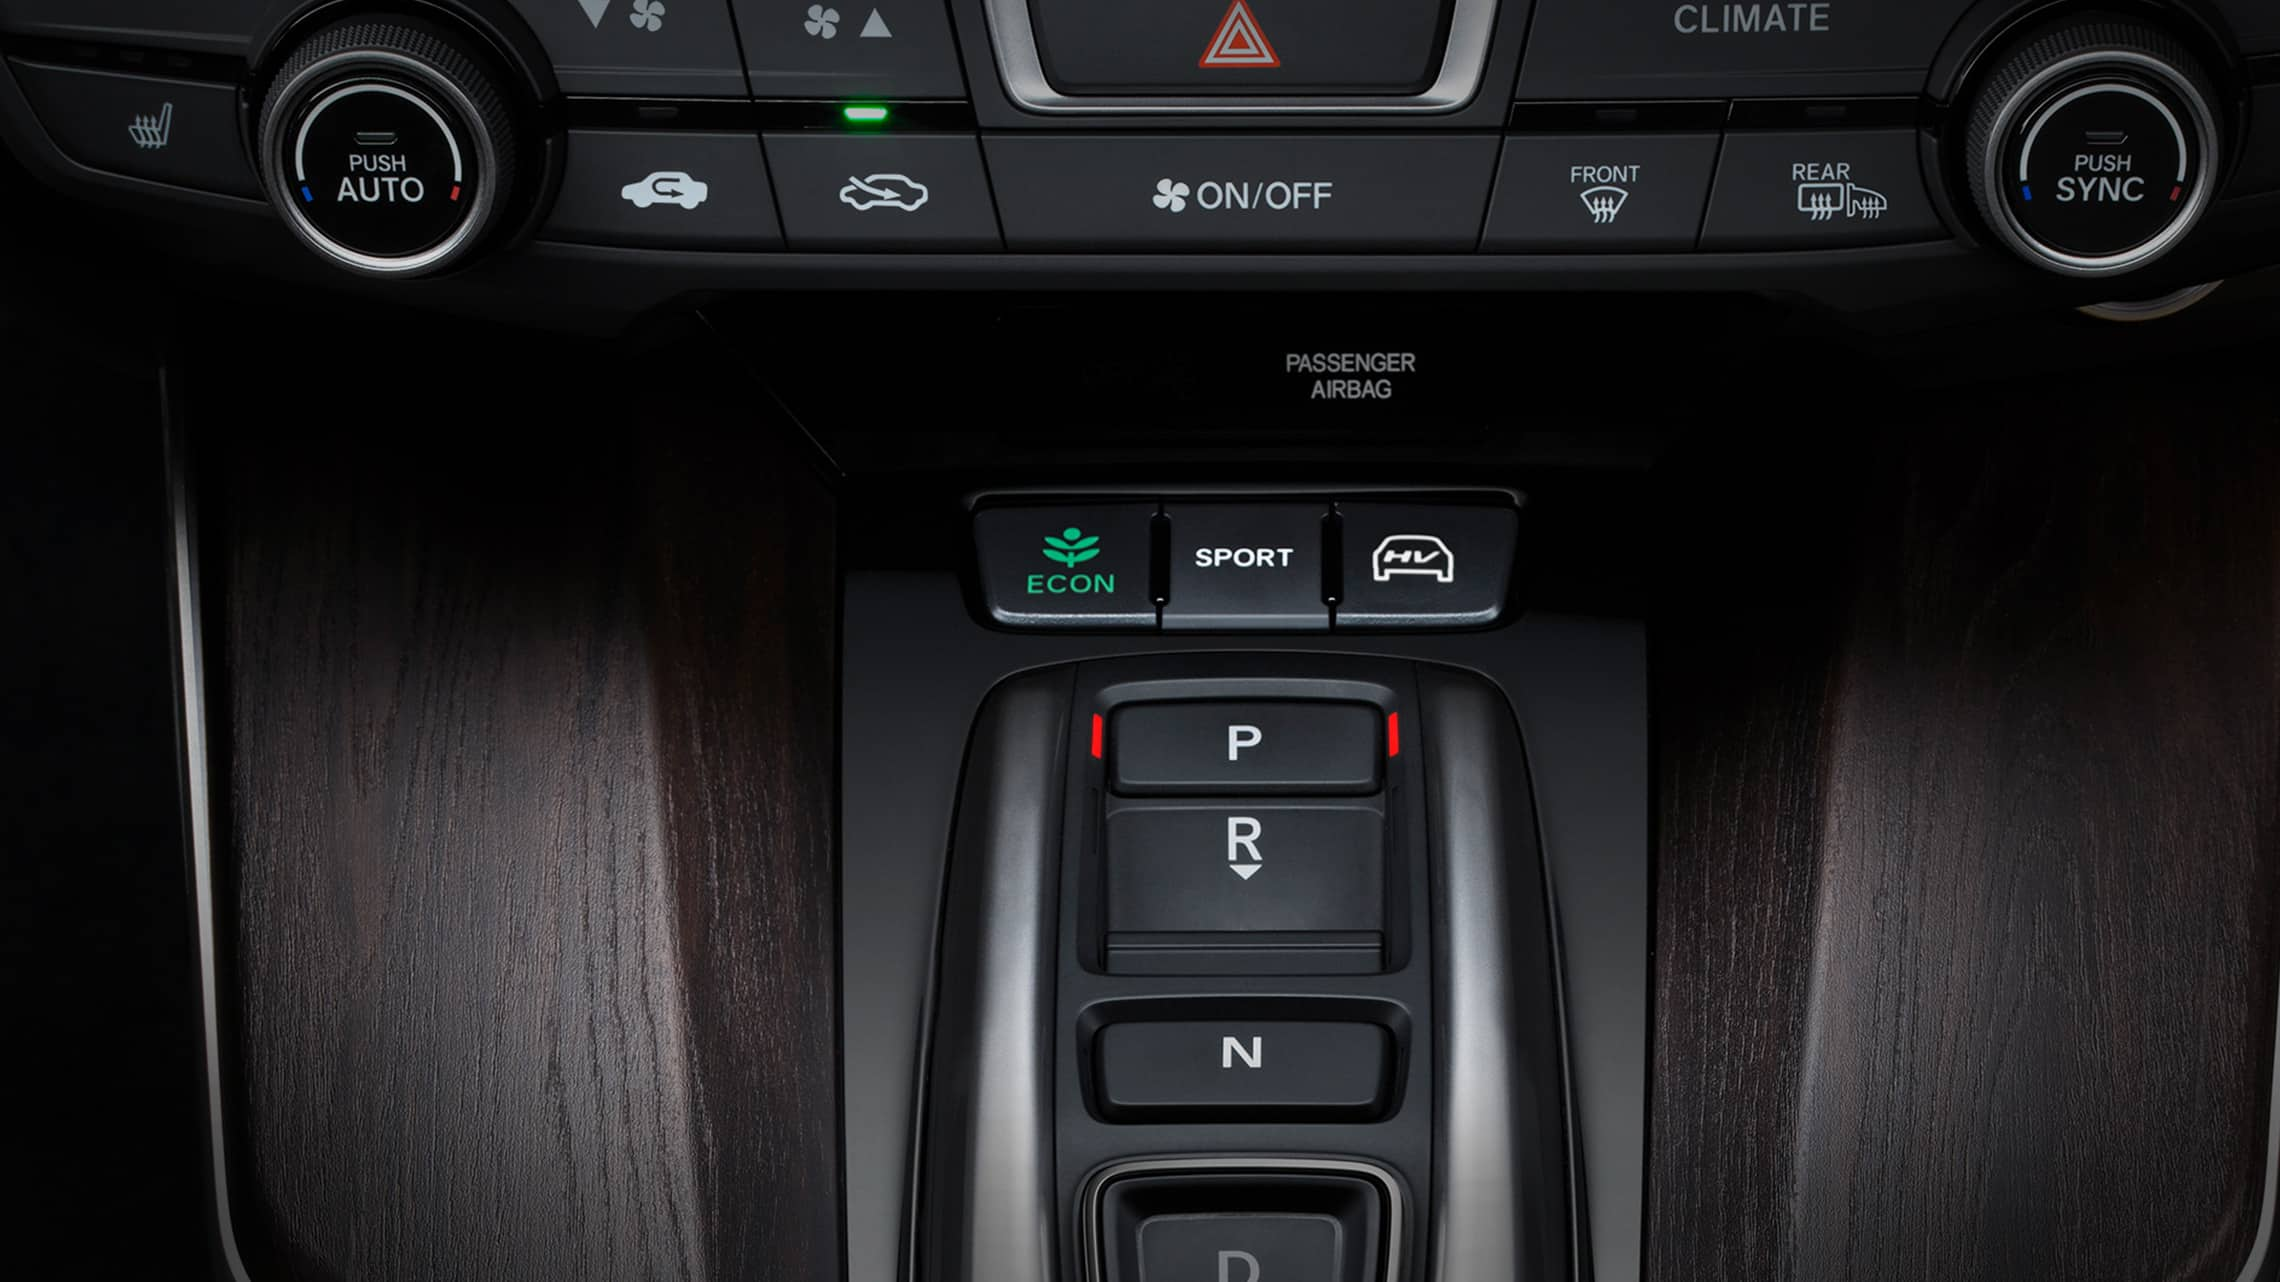 Detail of Shift-By-Wire in 2021 Clarity Plug-In Hybrid.